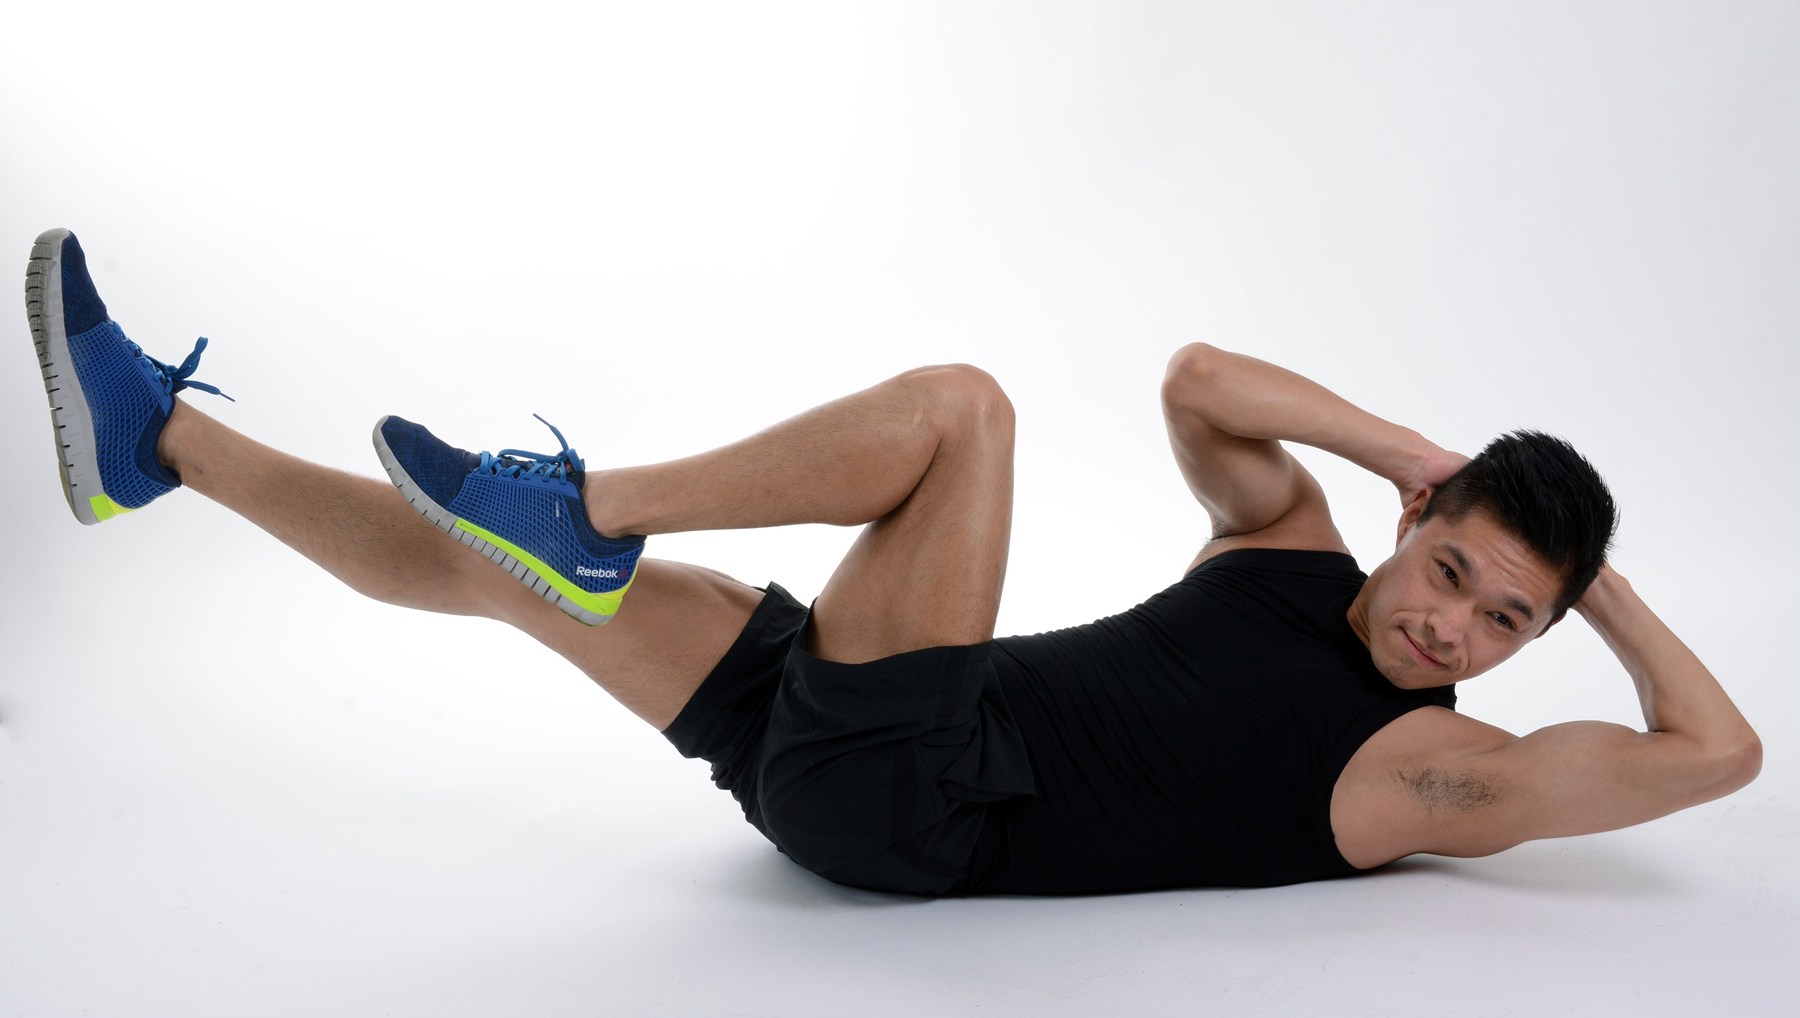 A man performing an ab exercise